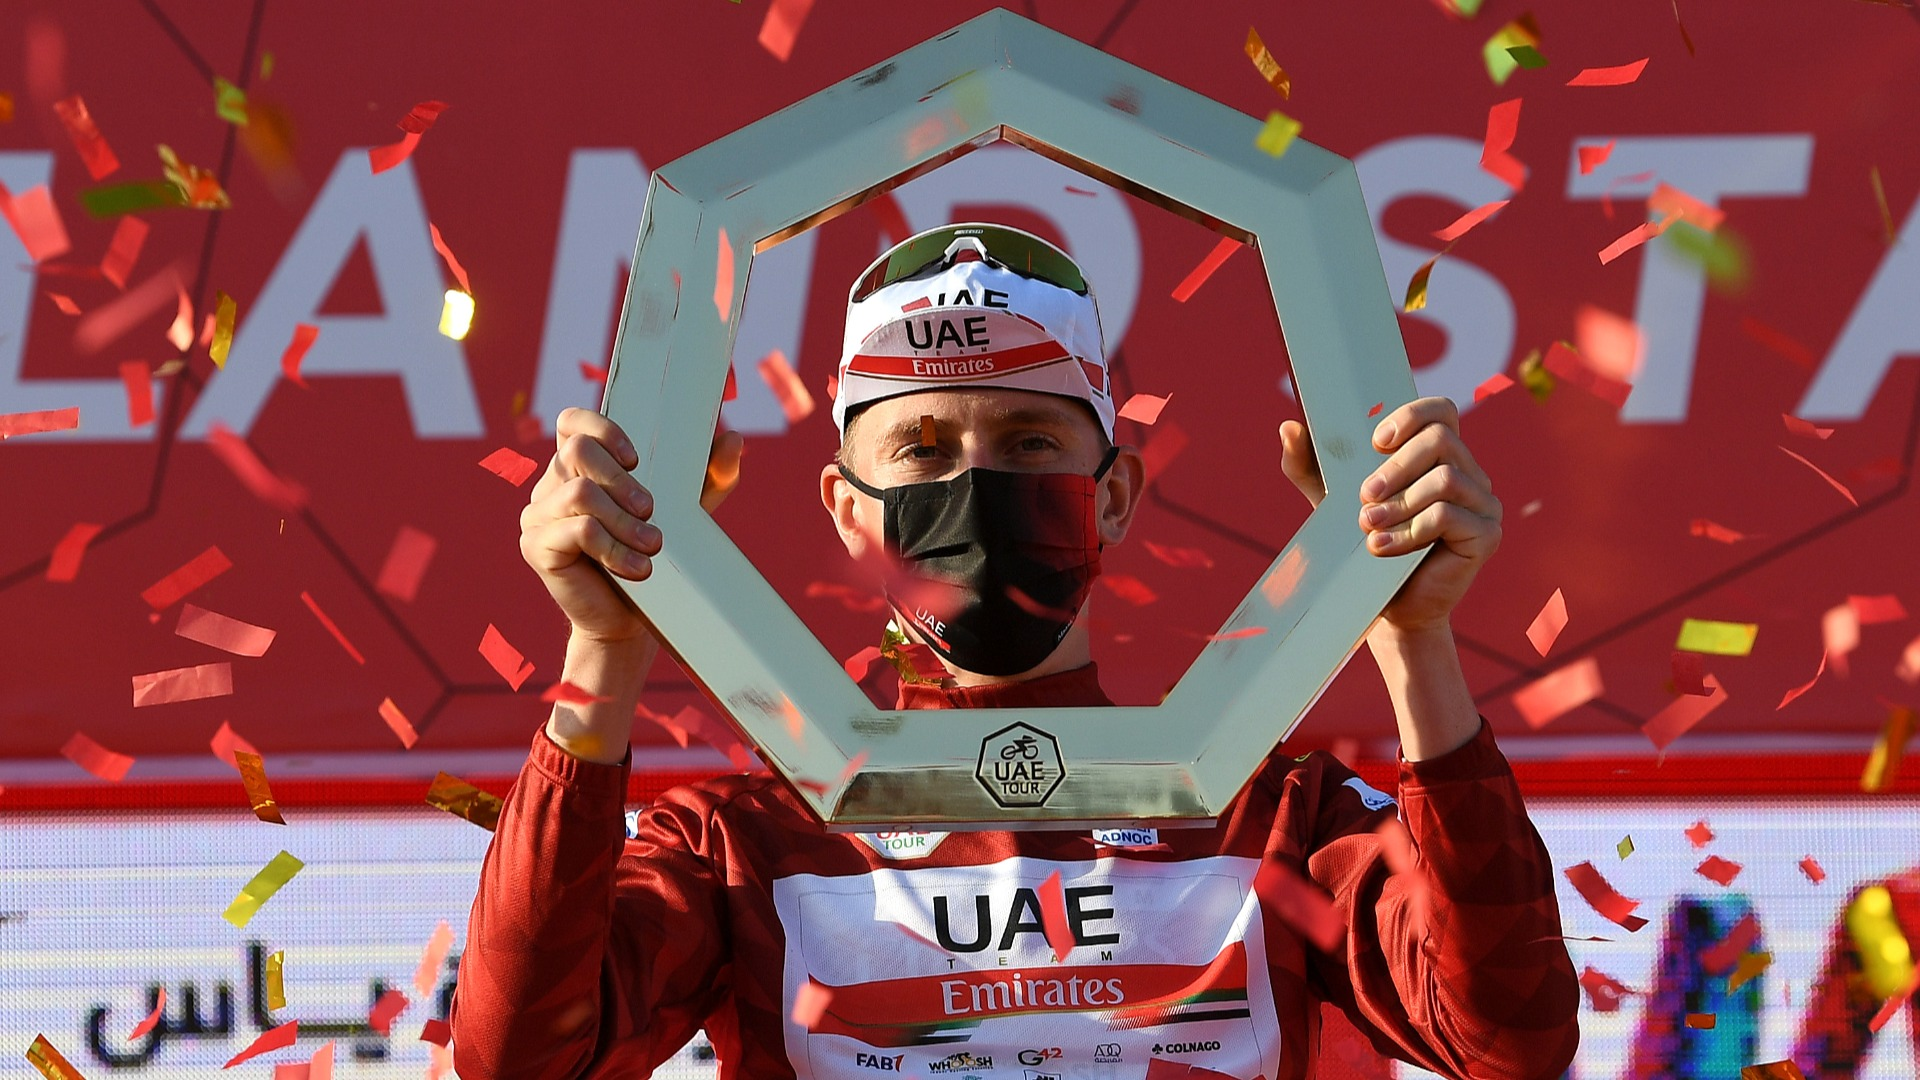 UAE Team Emirates have been boosted by news of Tadej Pogacar's contract extension, keeping the Tour de France champion on board until 2026.